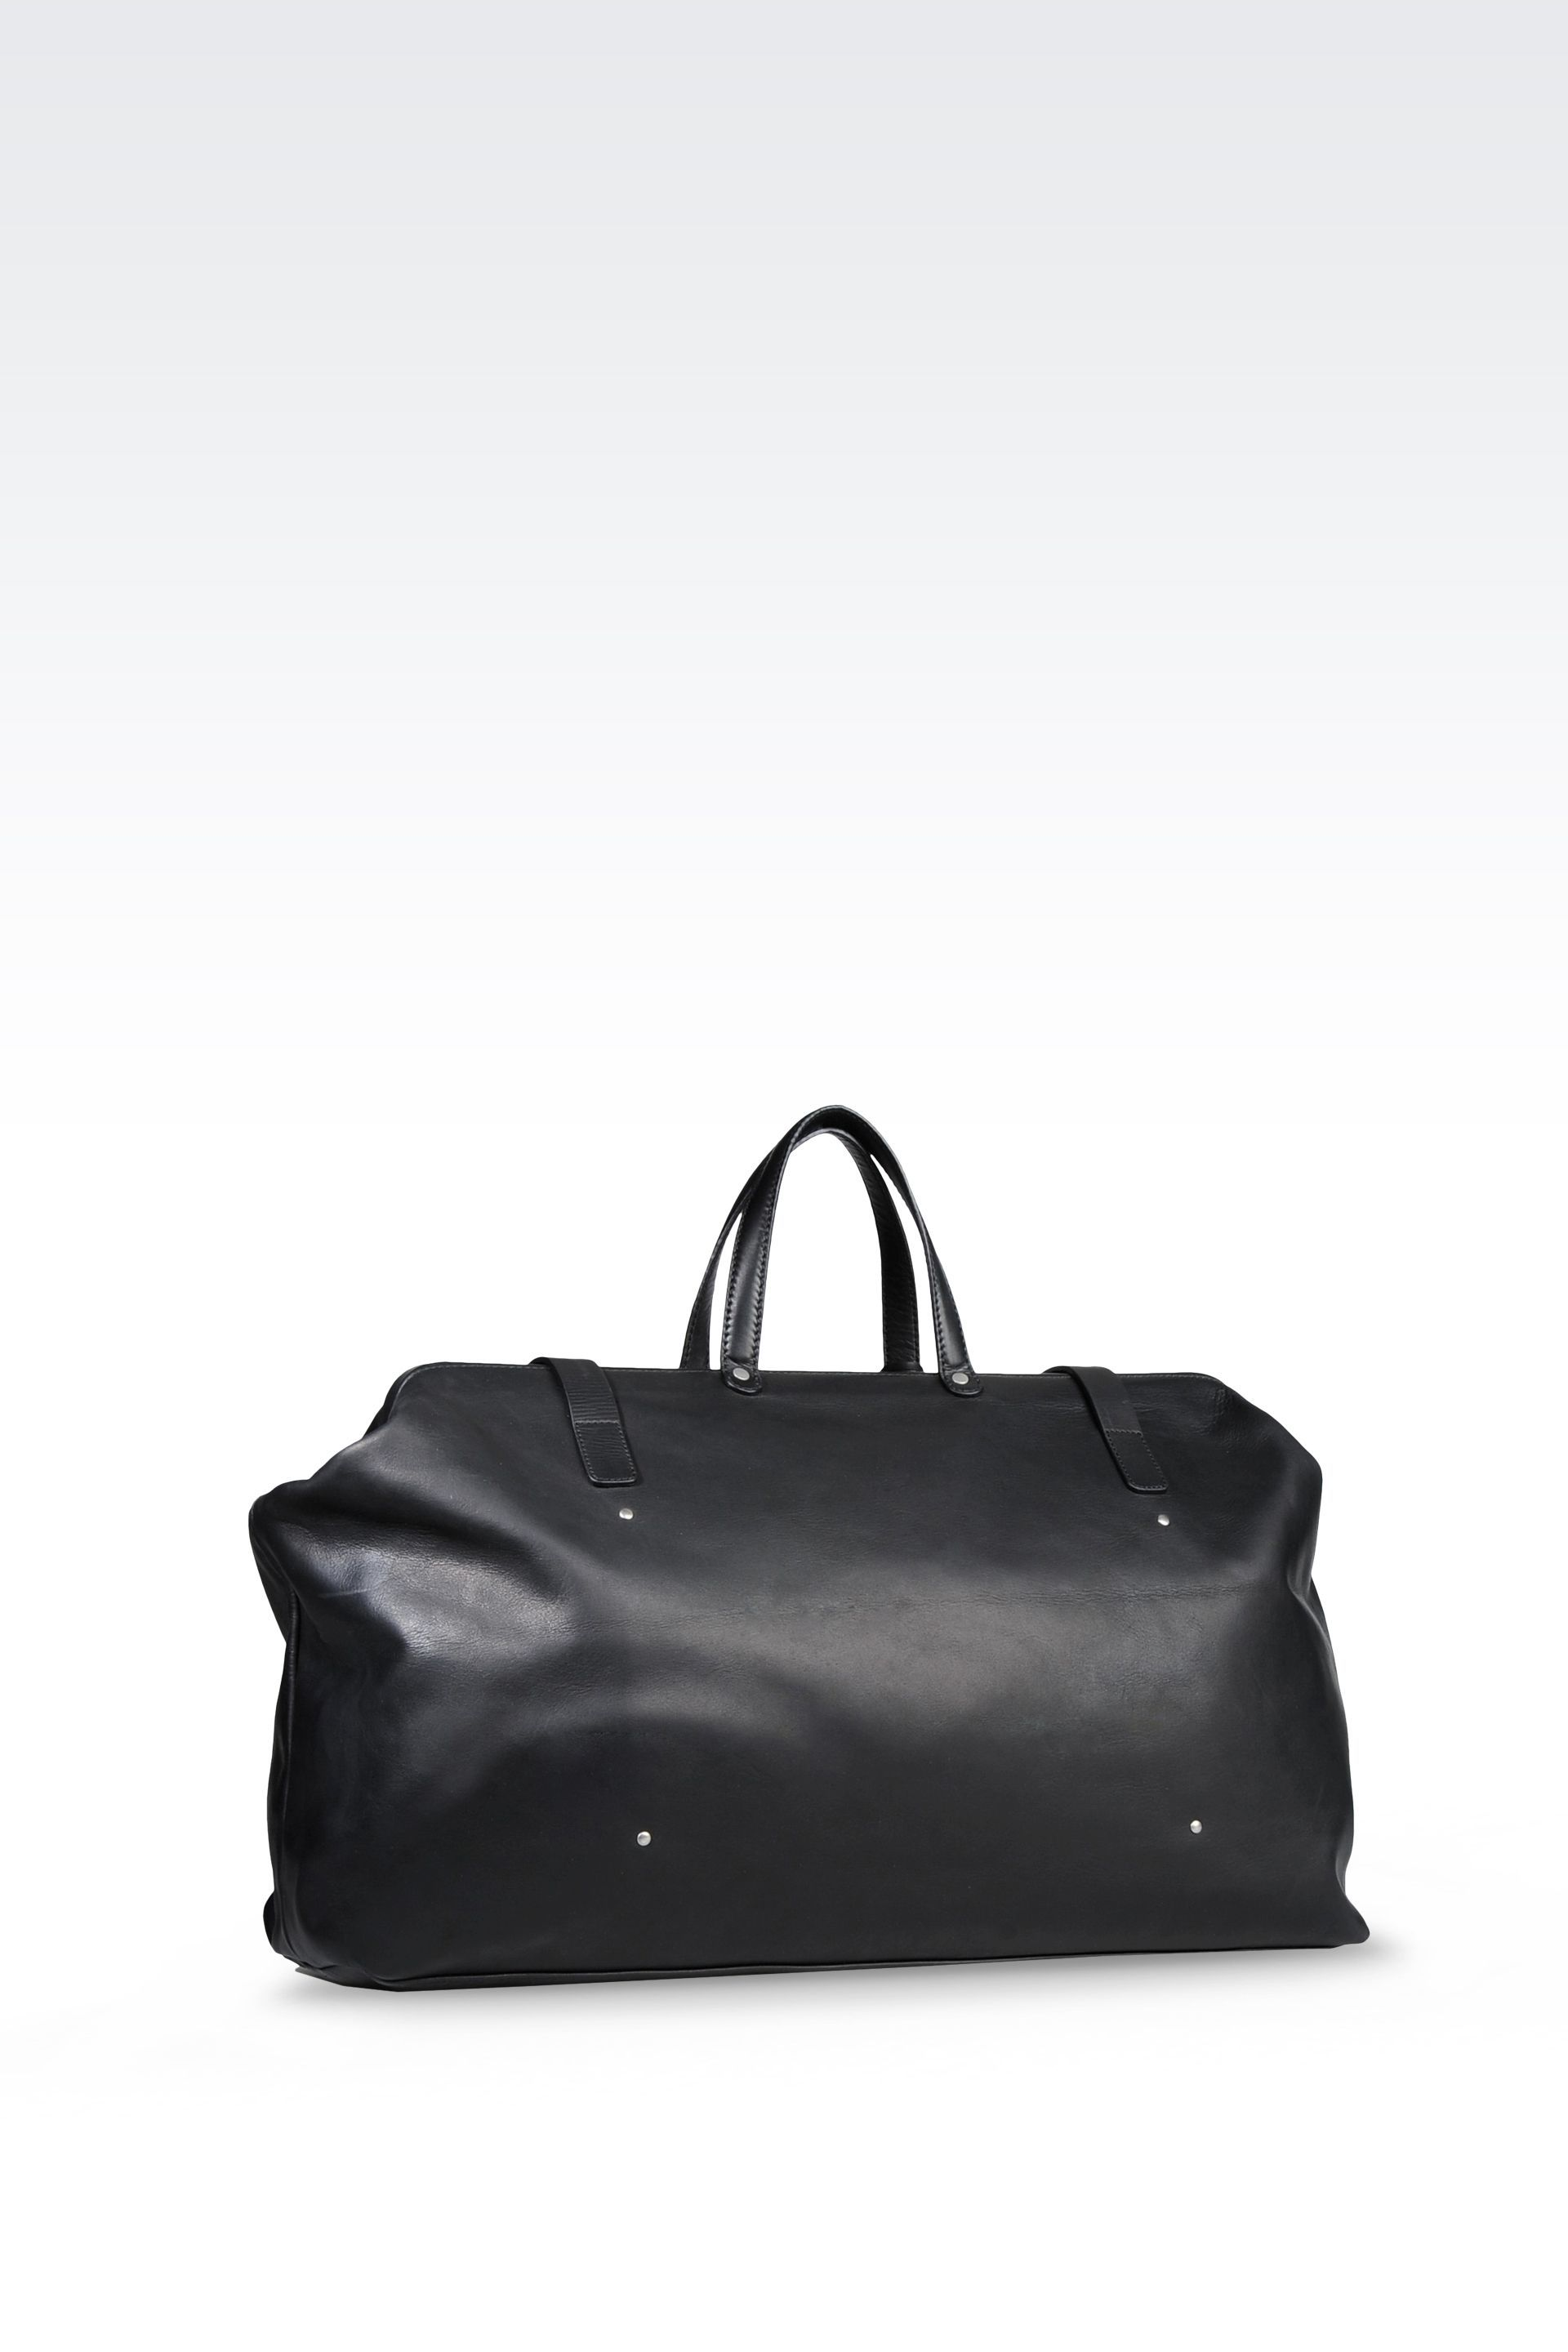 b57ef4f75b939 Emporio Armani Men Weekender Bag - LEATHER HOLDALL Emporio Armani Official Online  Store